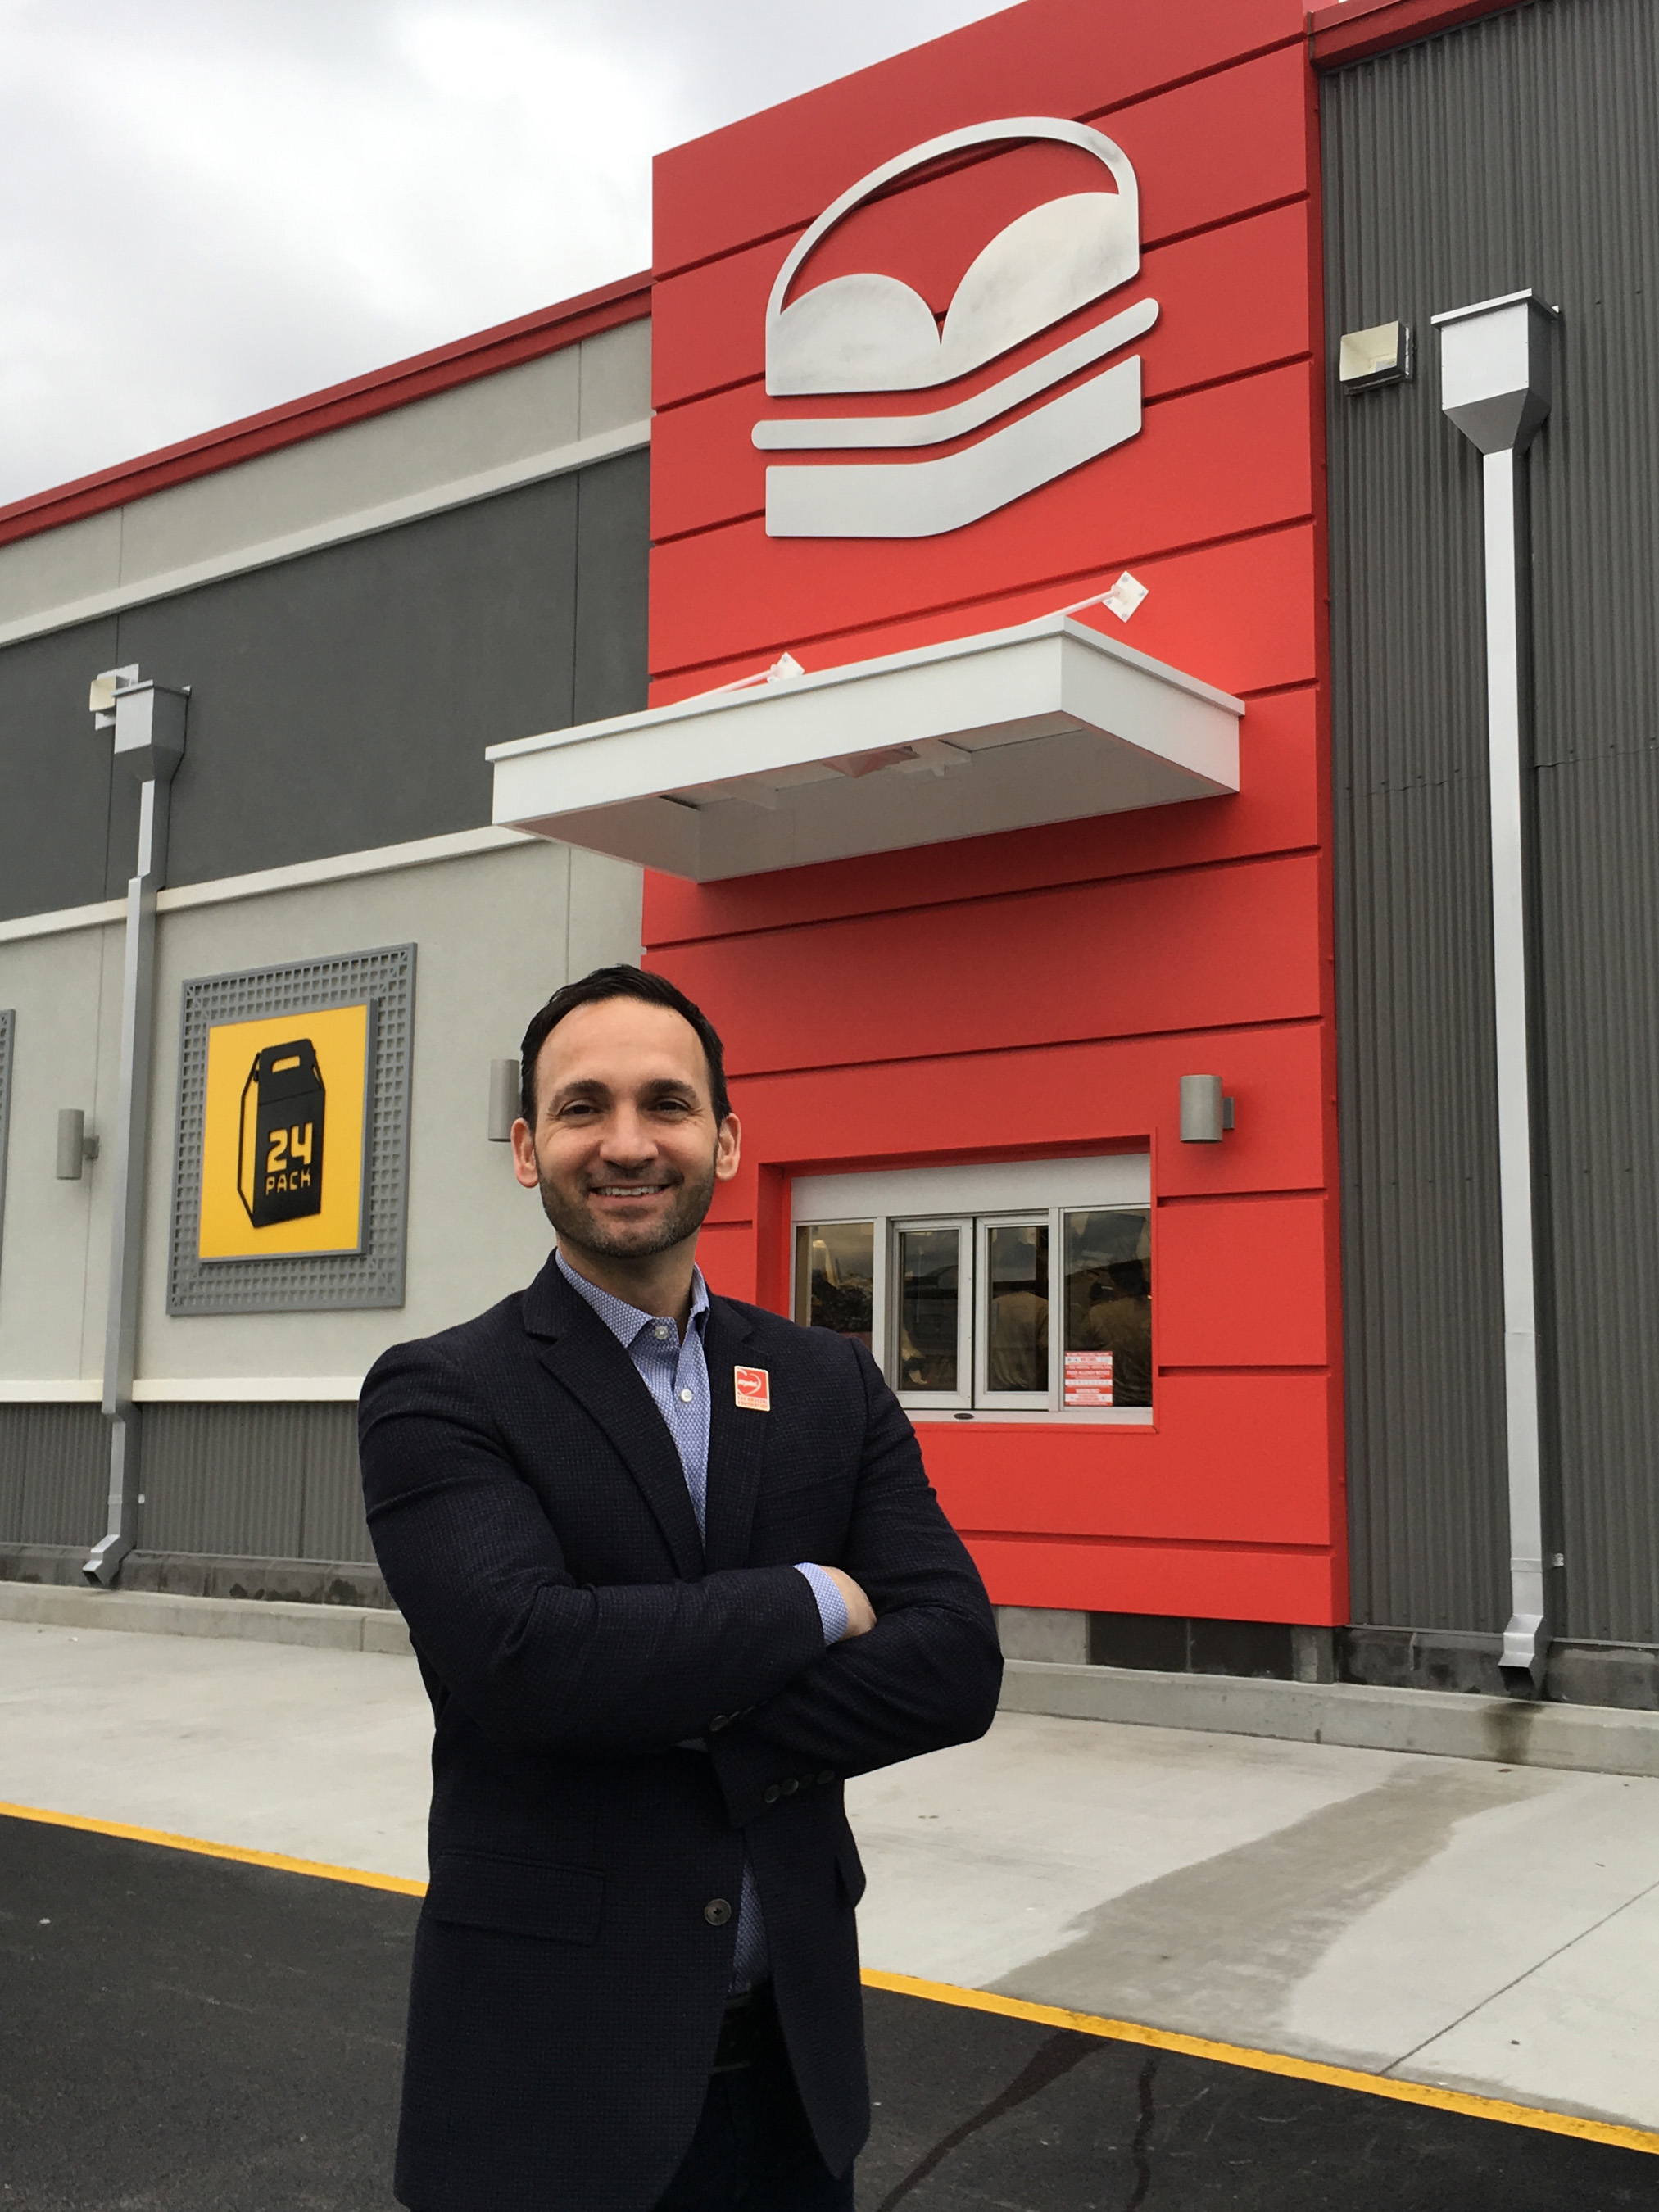 """""""The Foundation helps pay for programs that foster academic enrichment, while building life skills for the children of our customers and our employees.""""- Paul Macaluso, Krystal CEO and President of The Krystal Foundation"""